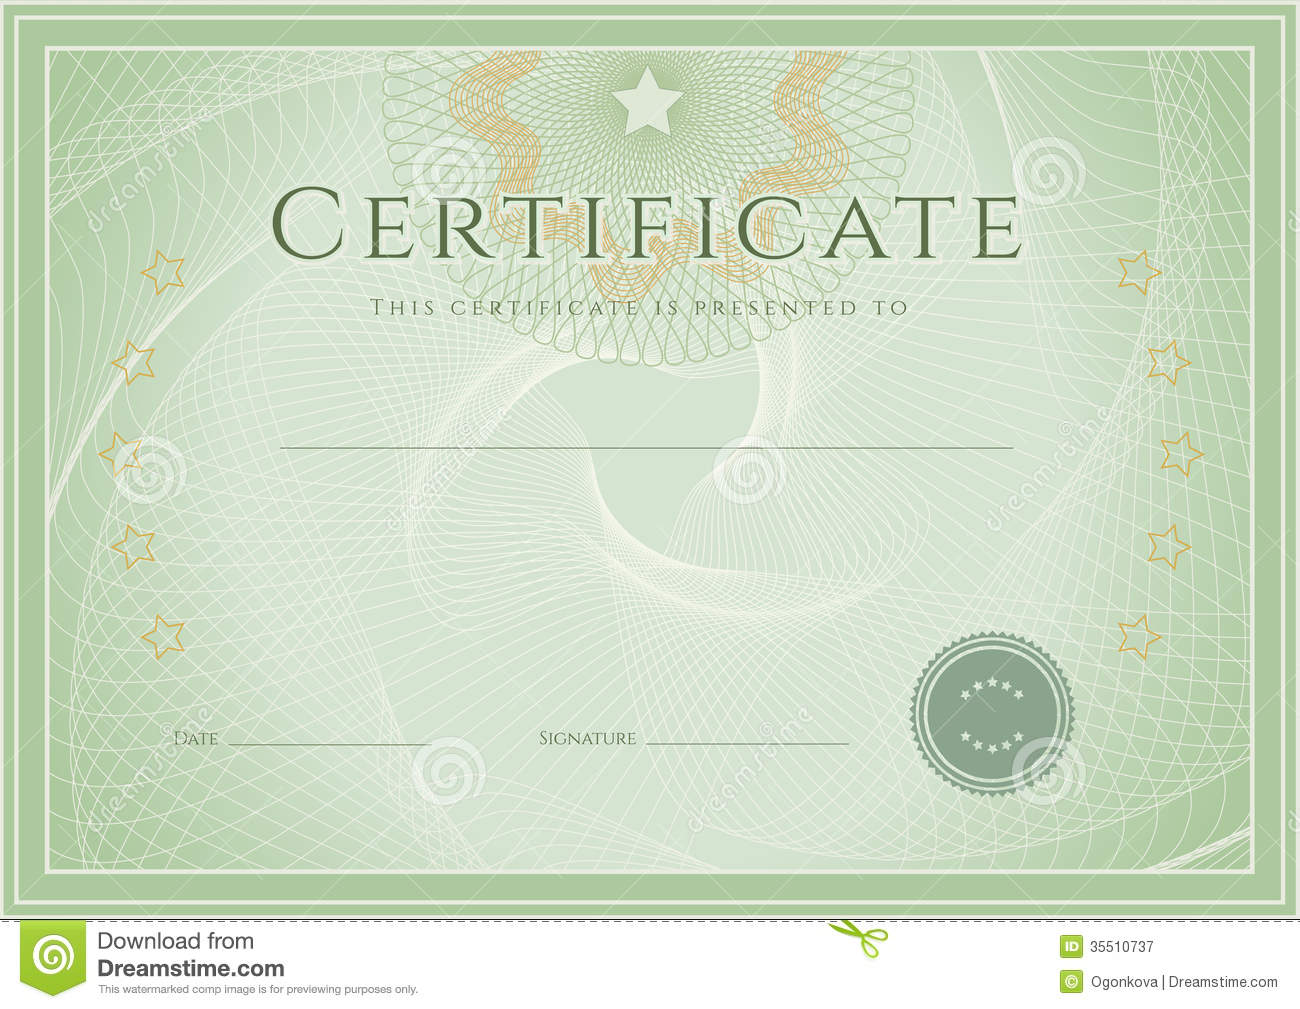 Certificate diploma award template grunge patte royalty free royalty free stock photo download certificate diploma award template yadclub Images